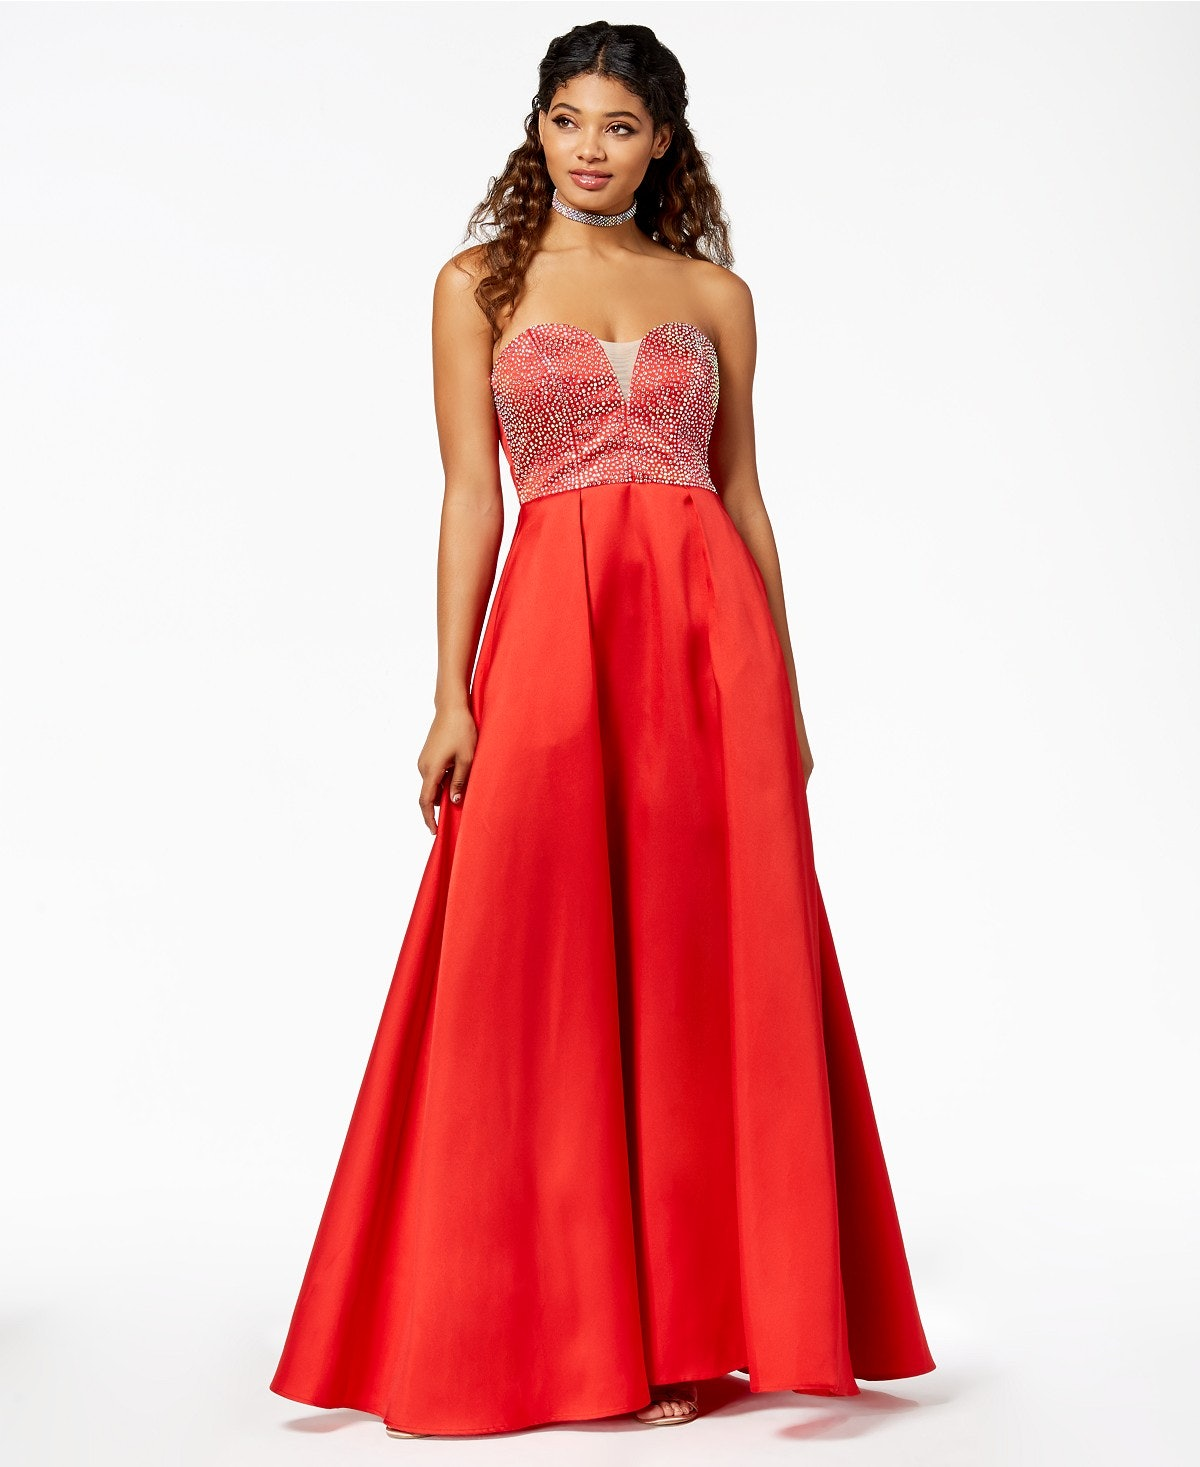 b03fde7e24  Say Yes To The Prom  Dresses Are Here So You Can Get The Red Carpet  Treatment